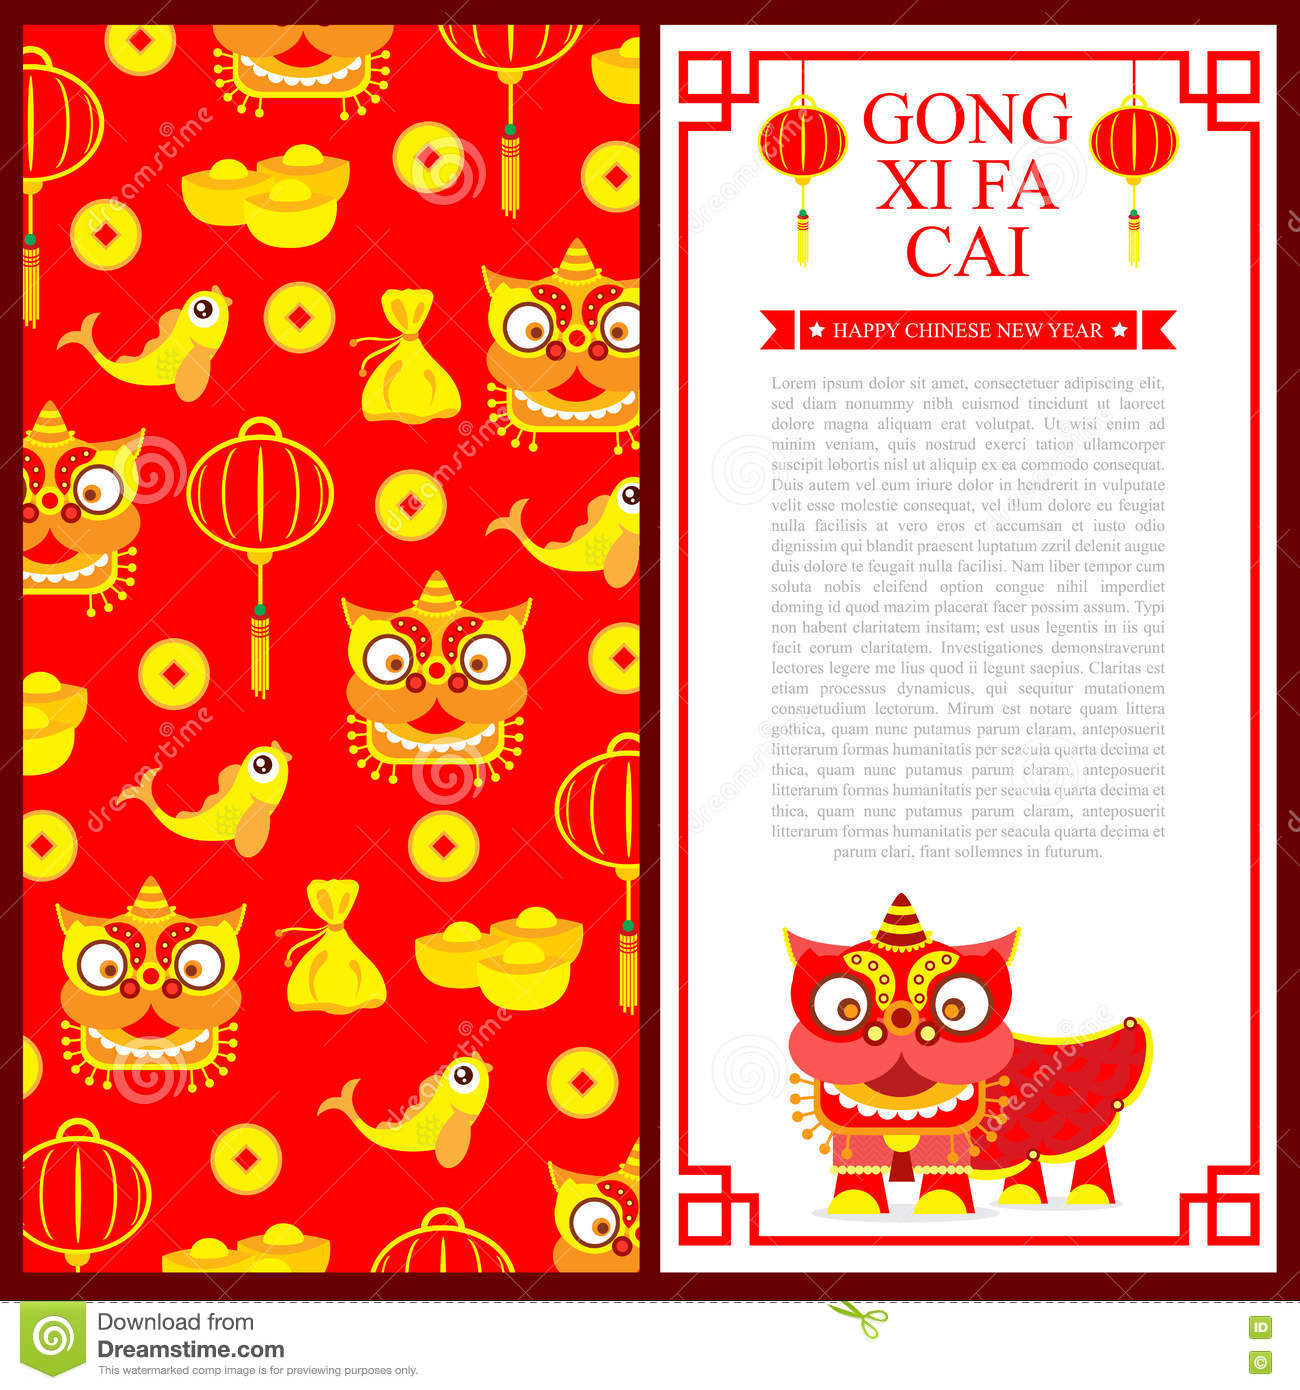 Chinese new year invitation card stock vector illustration of download chinese new year invitation card stock vector illustration of birthday fortune 78299059 stopboris Gallery